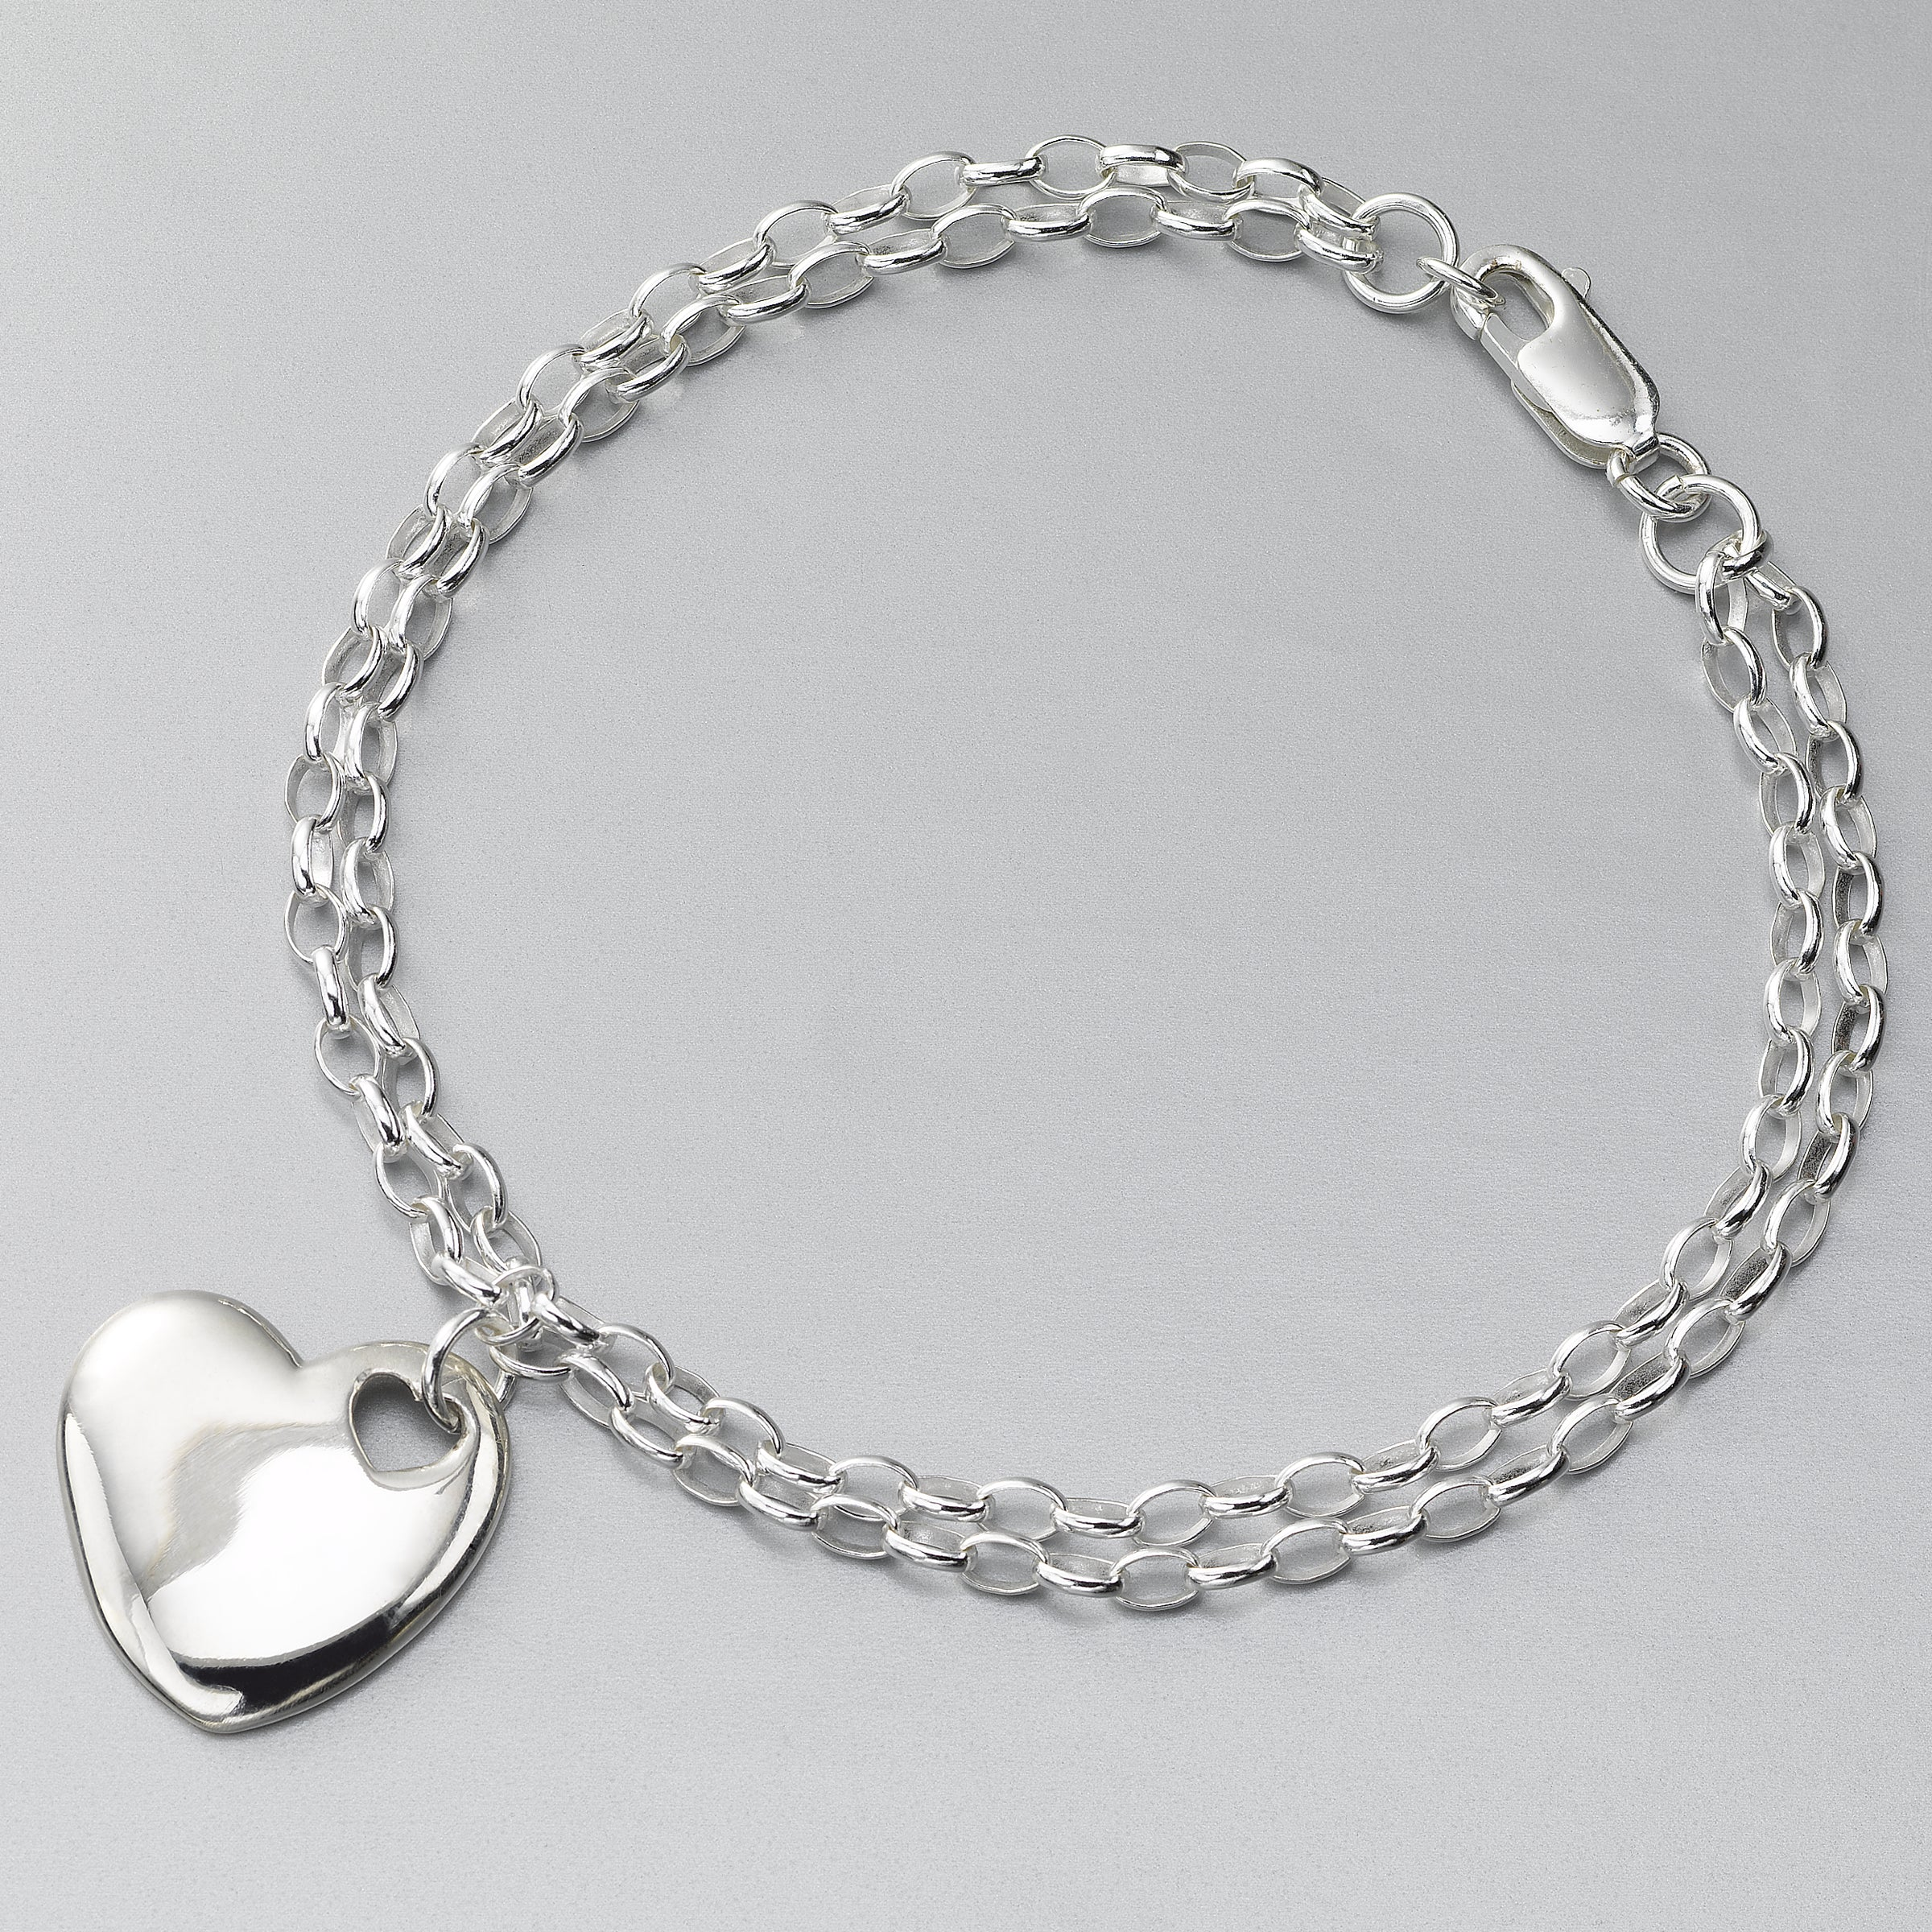 Heart Charm Bracelet with Double Rolo Link Chain, Sterling Silver, 7.5 Inches